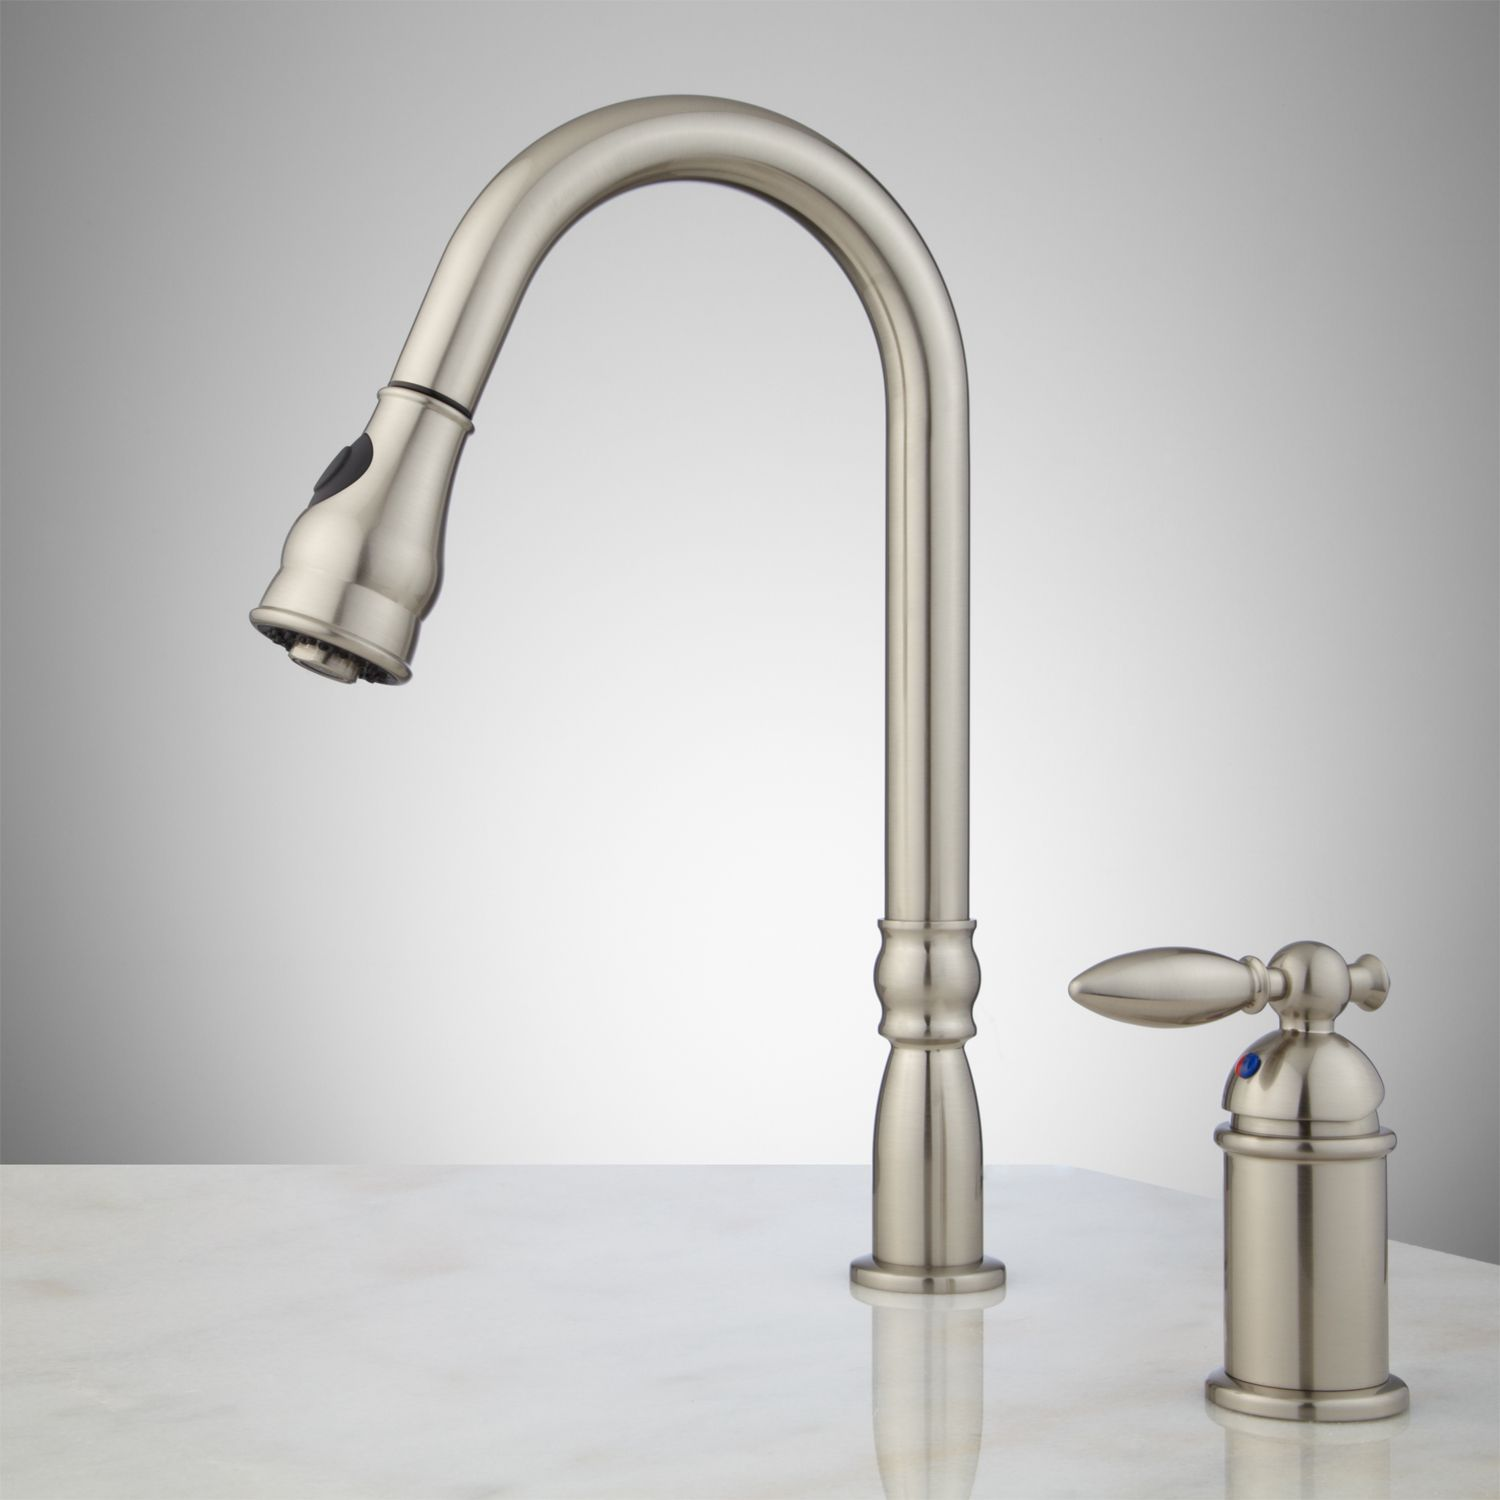 kitchen faucets pull down spray brushed nickel Google